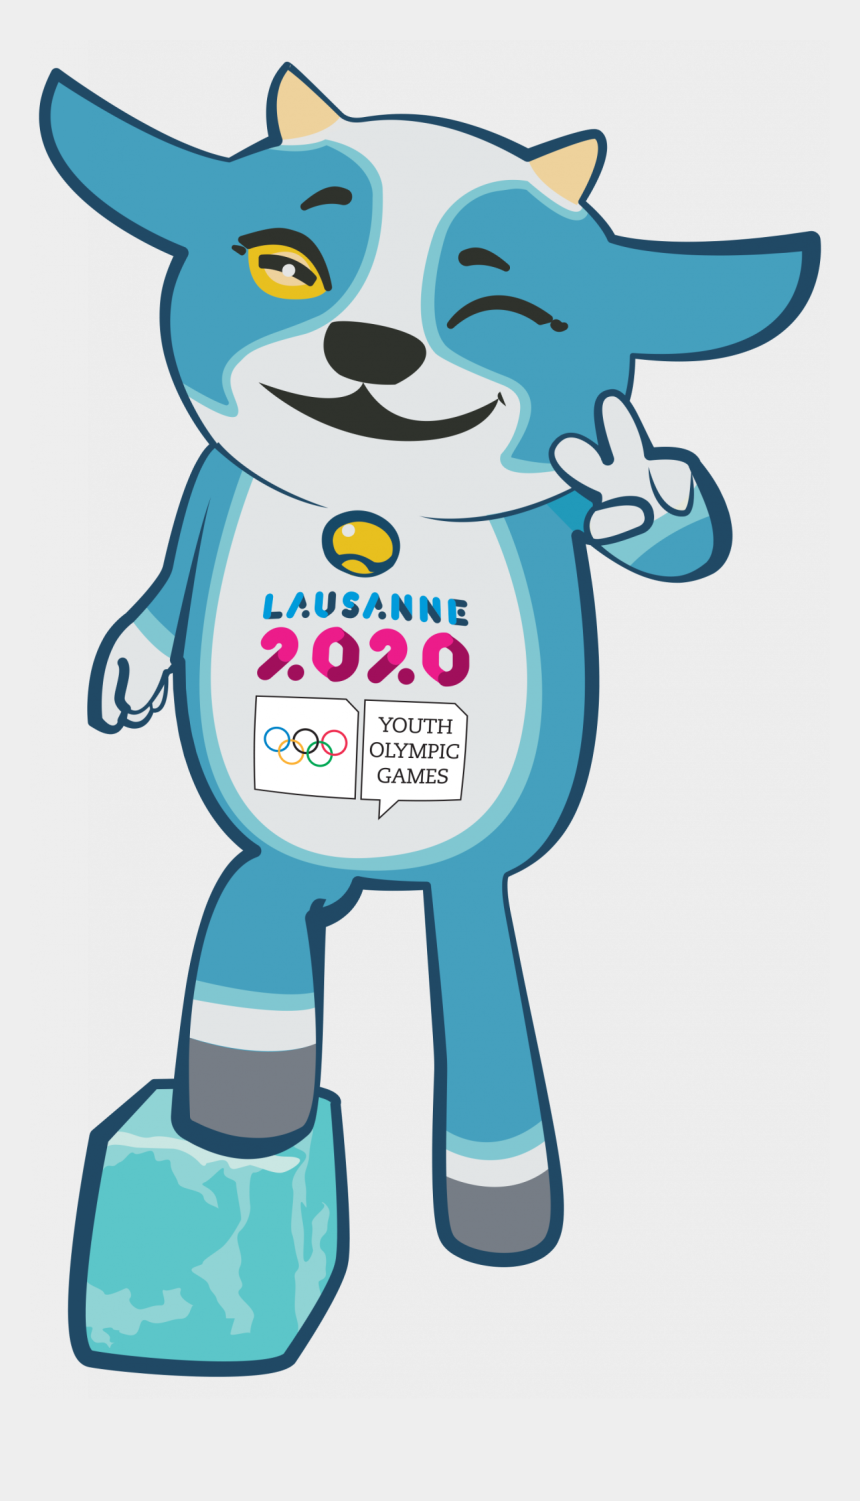 olympic clipart, Cartoons - Olympics Clipart Winter Thailand - Youth Olympic Games Mascot